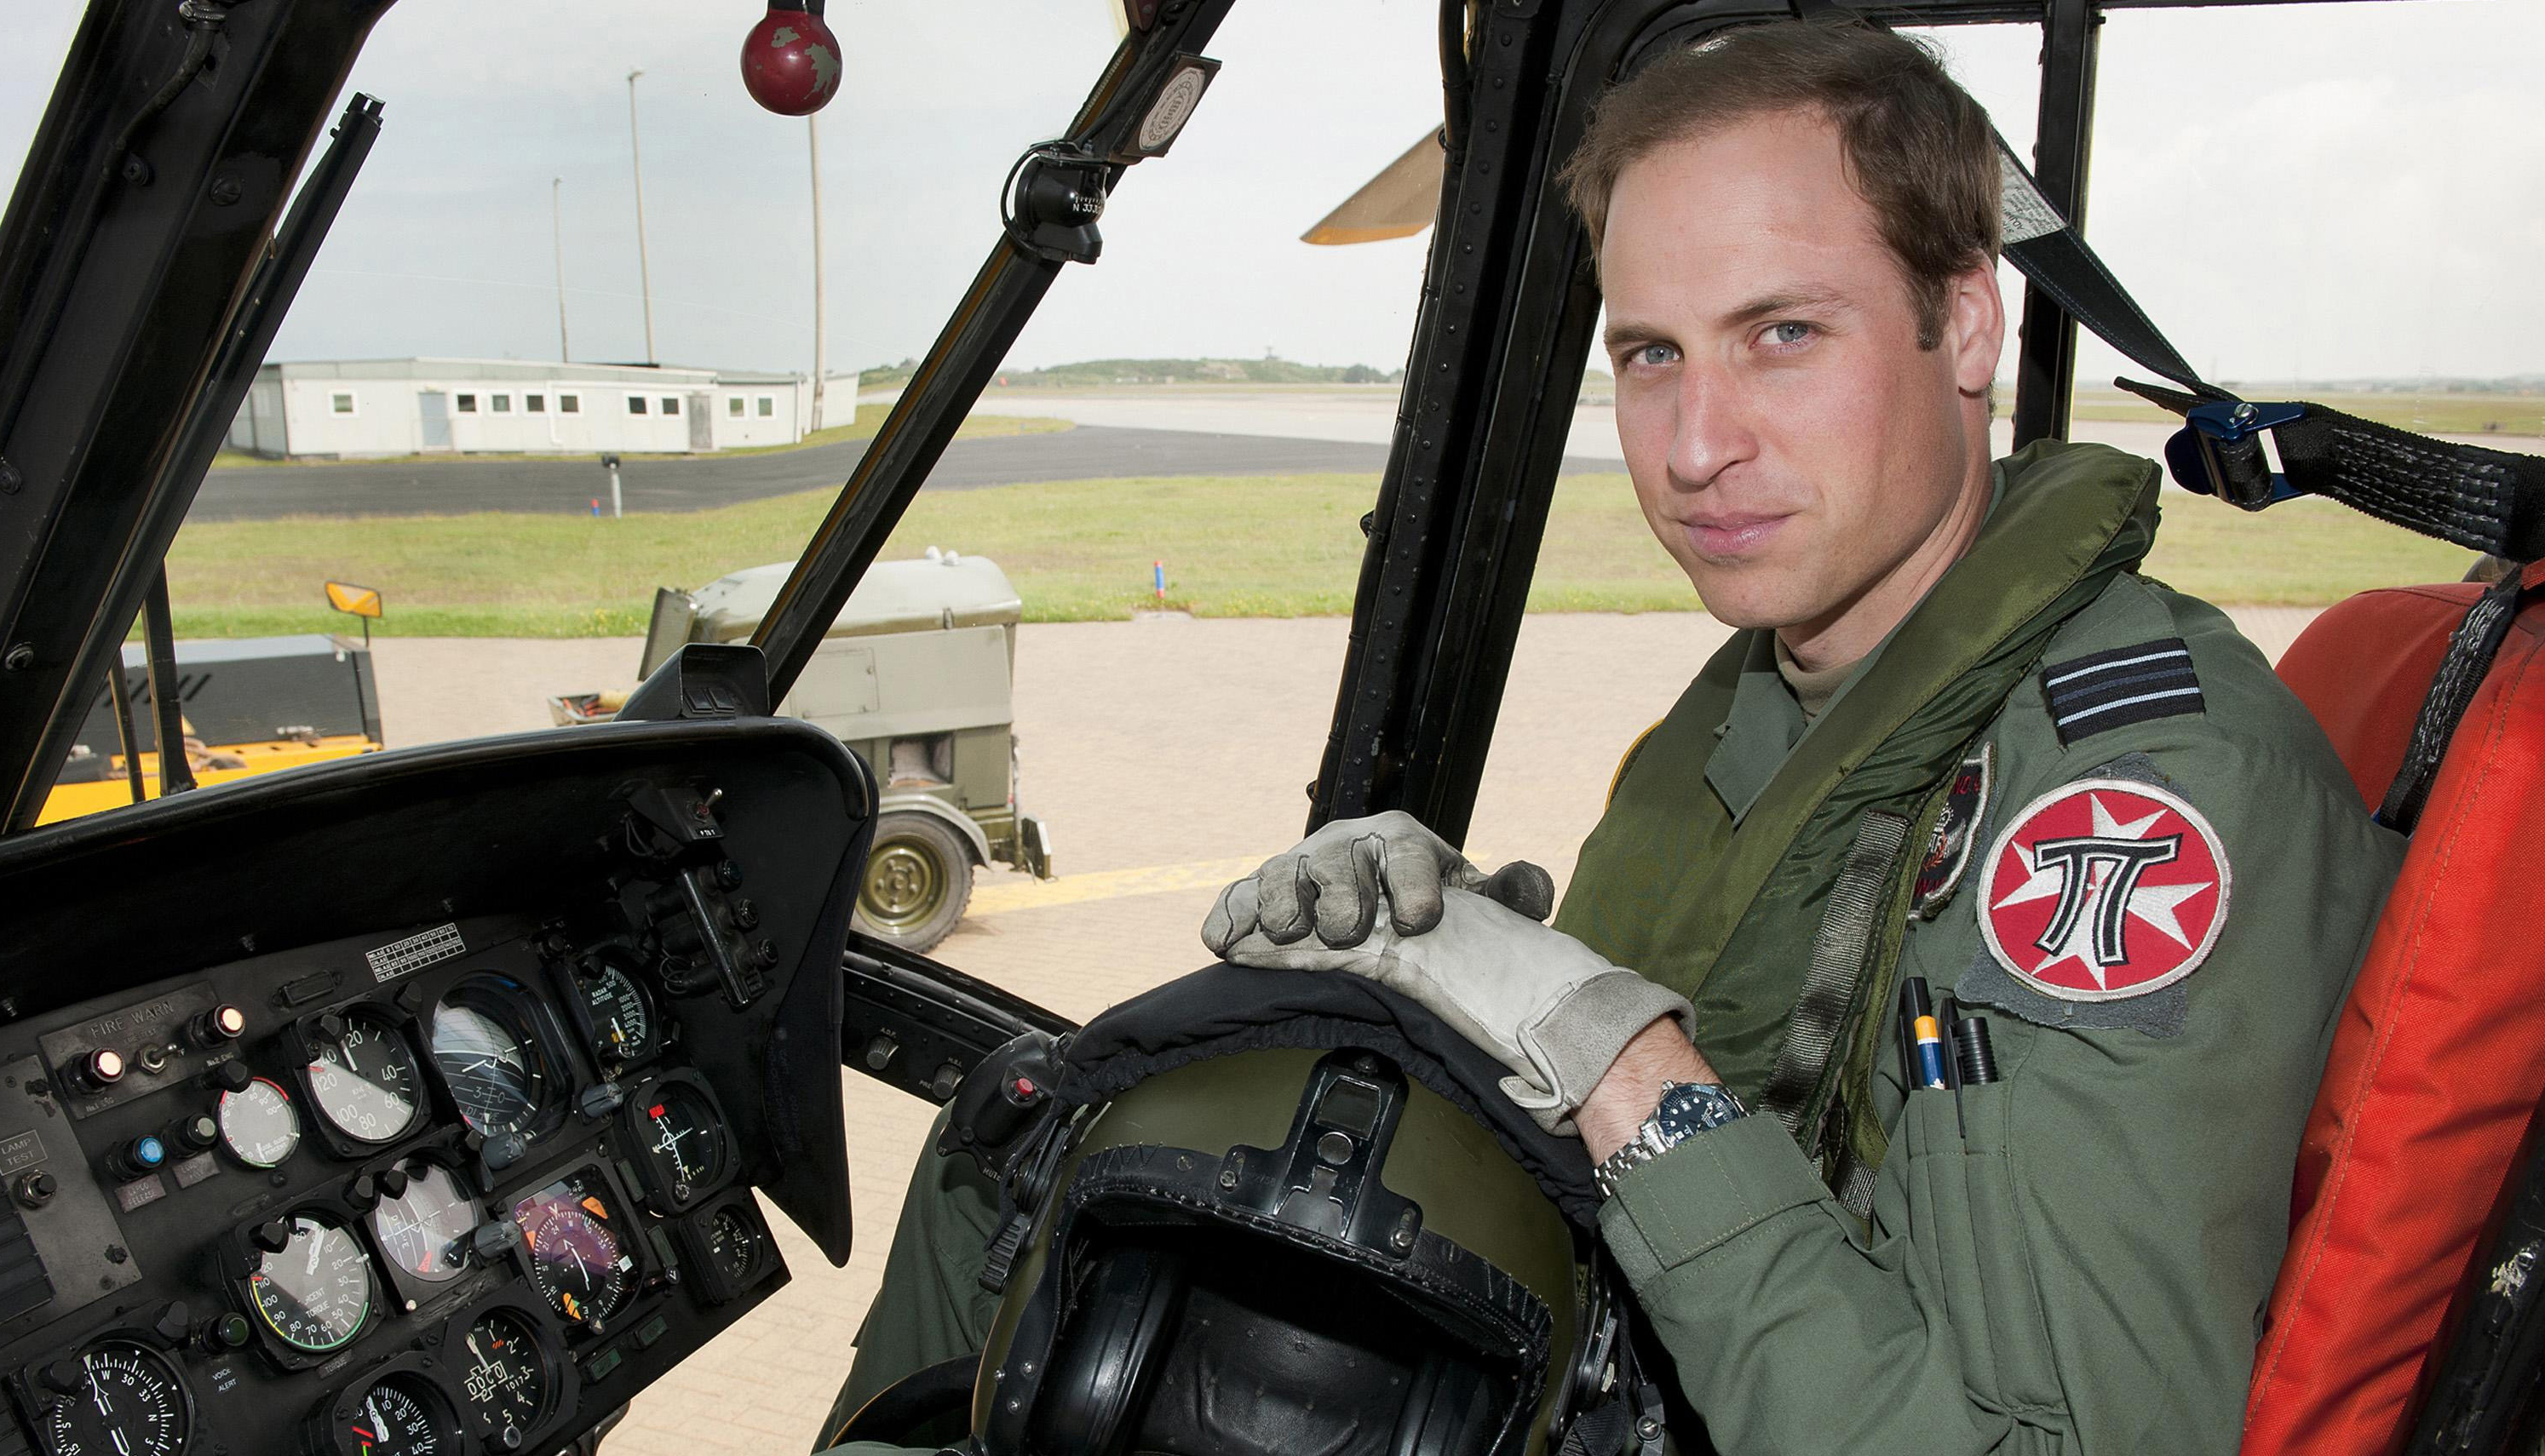 Prince William to work final shift as air ambulance pilot